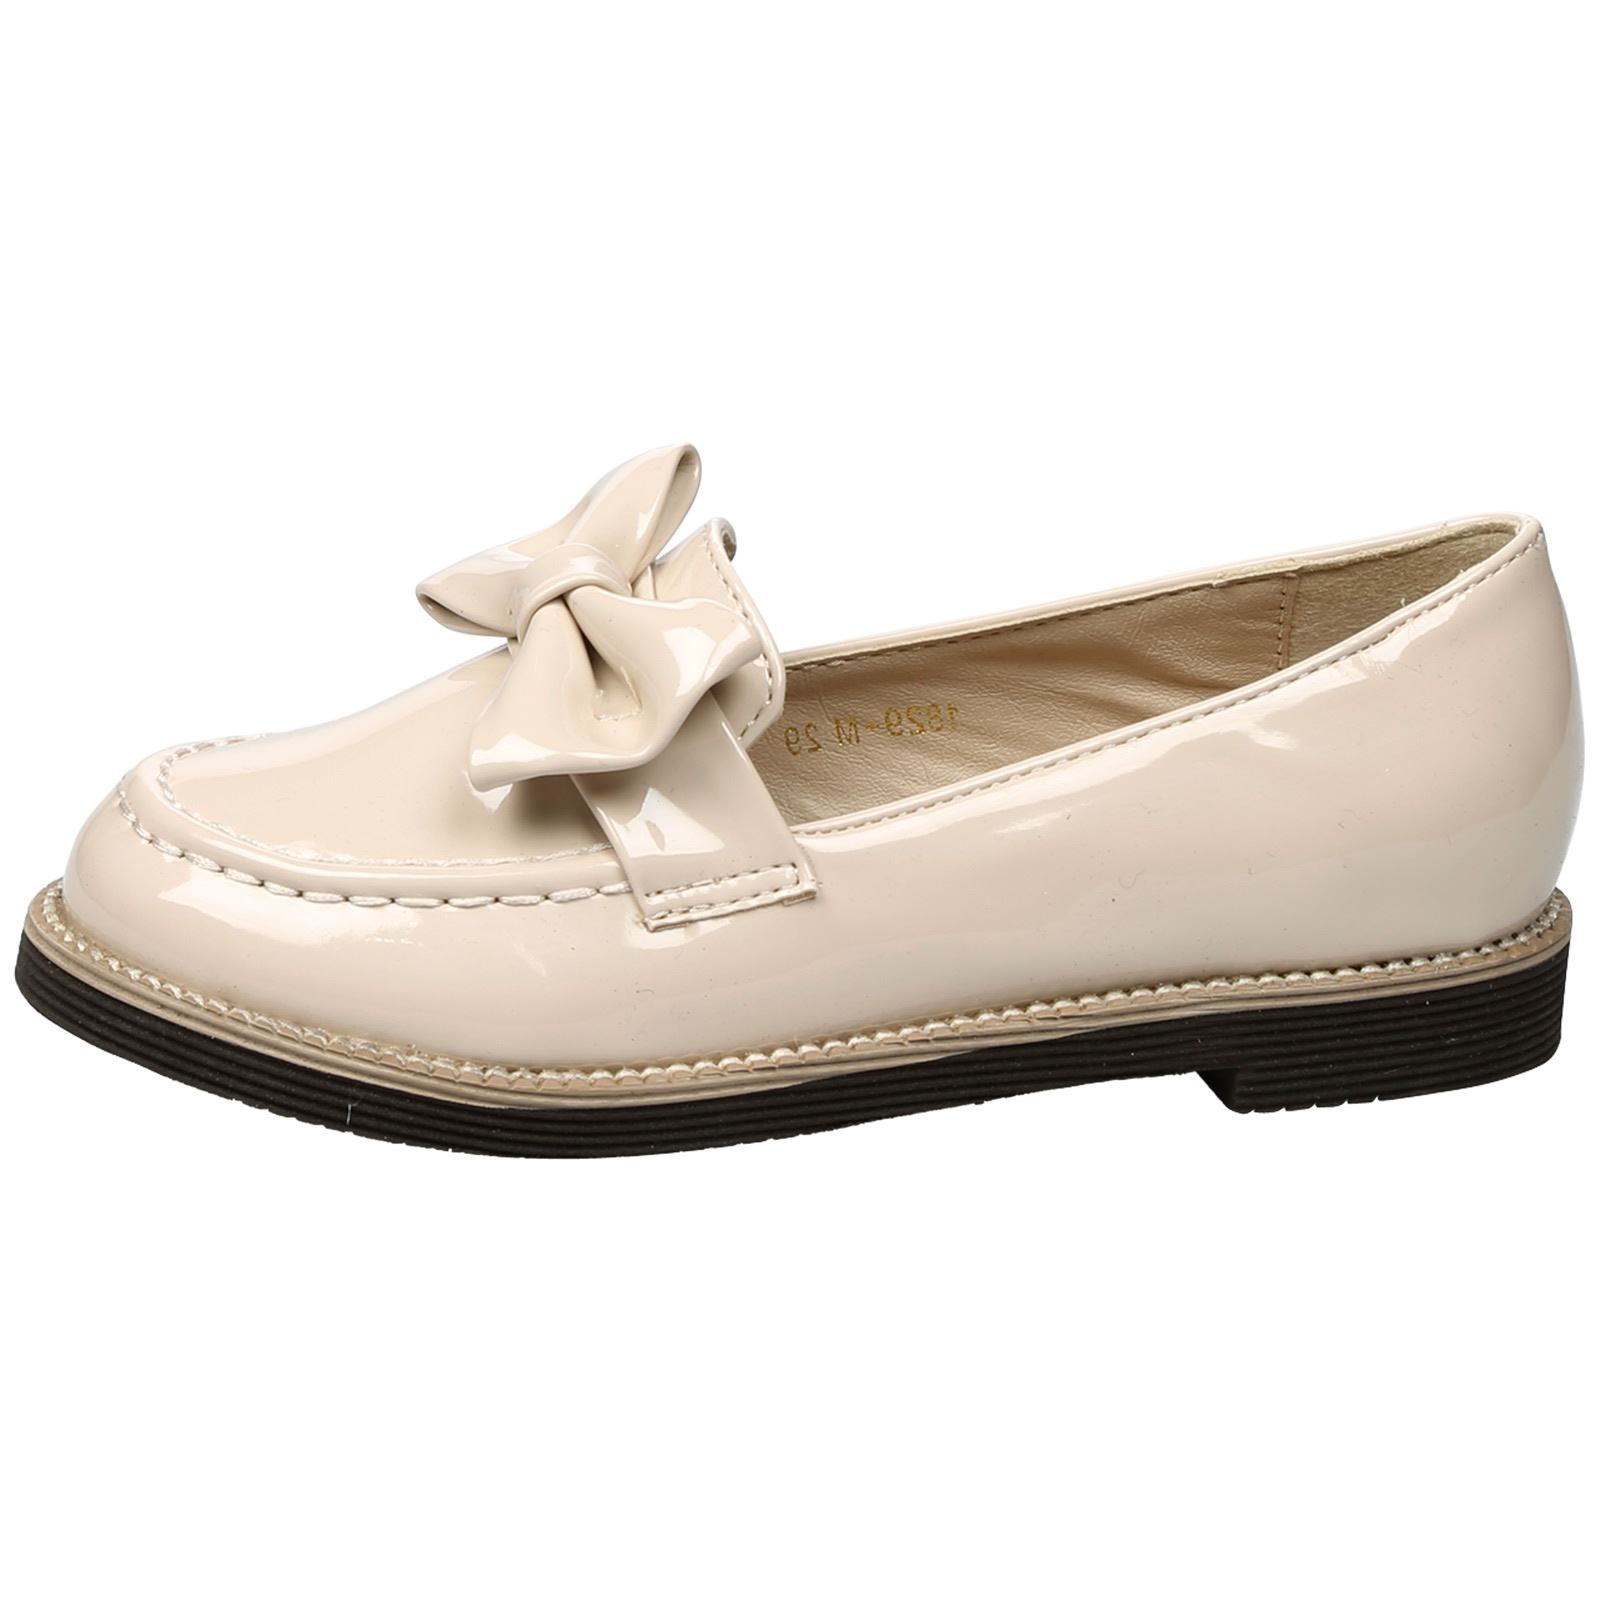 KIDS GIRLS CHILDRENS SHOES PUMPS LOAFERS BROGUE SCHOOL SMART BOW FLATS SIZE NEW